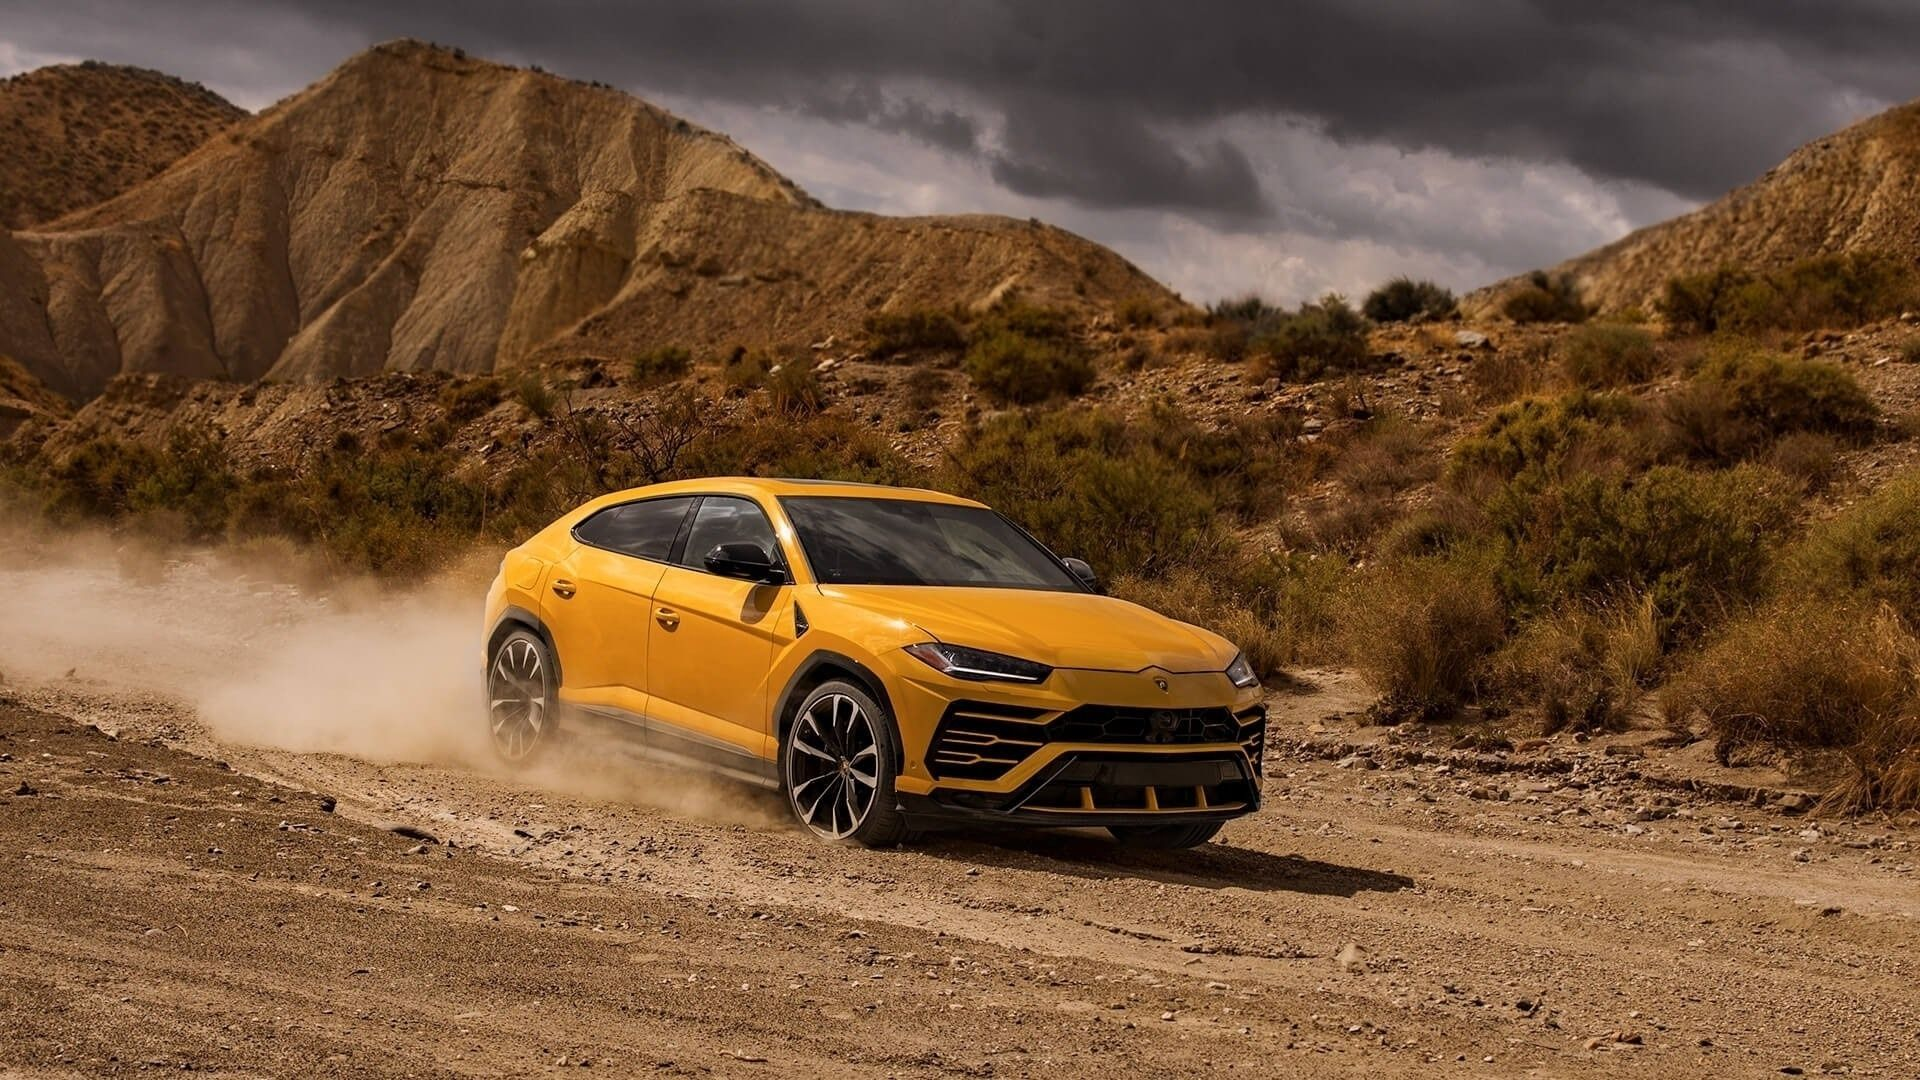 99 New 2020 Renault Megane SUV First Drive